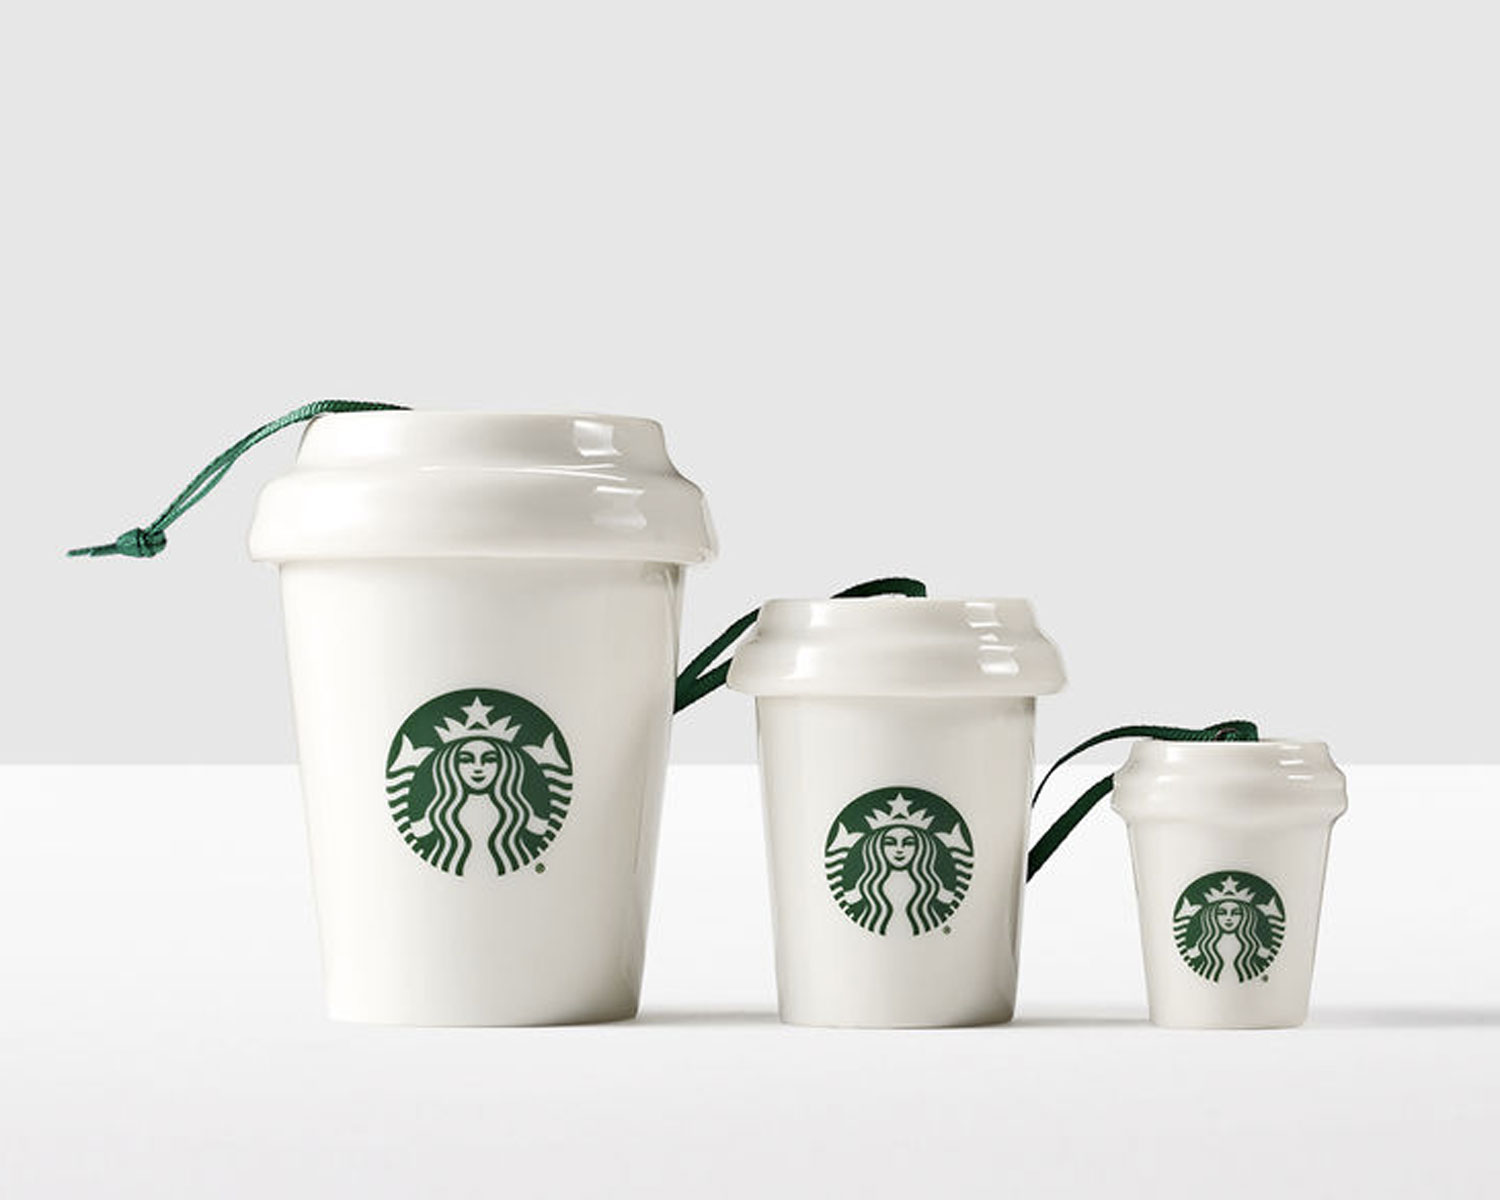 starbucks sale bridesmaids gifts you ll want to scoop up. Black Bedroom Furniture Sets. Home Design Ideas